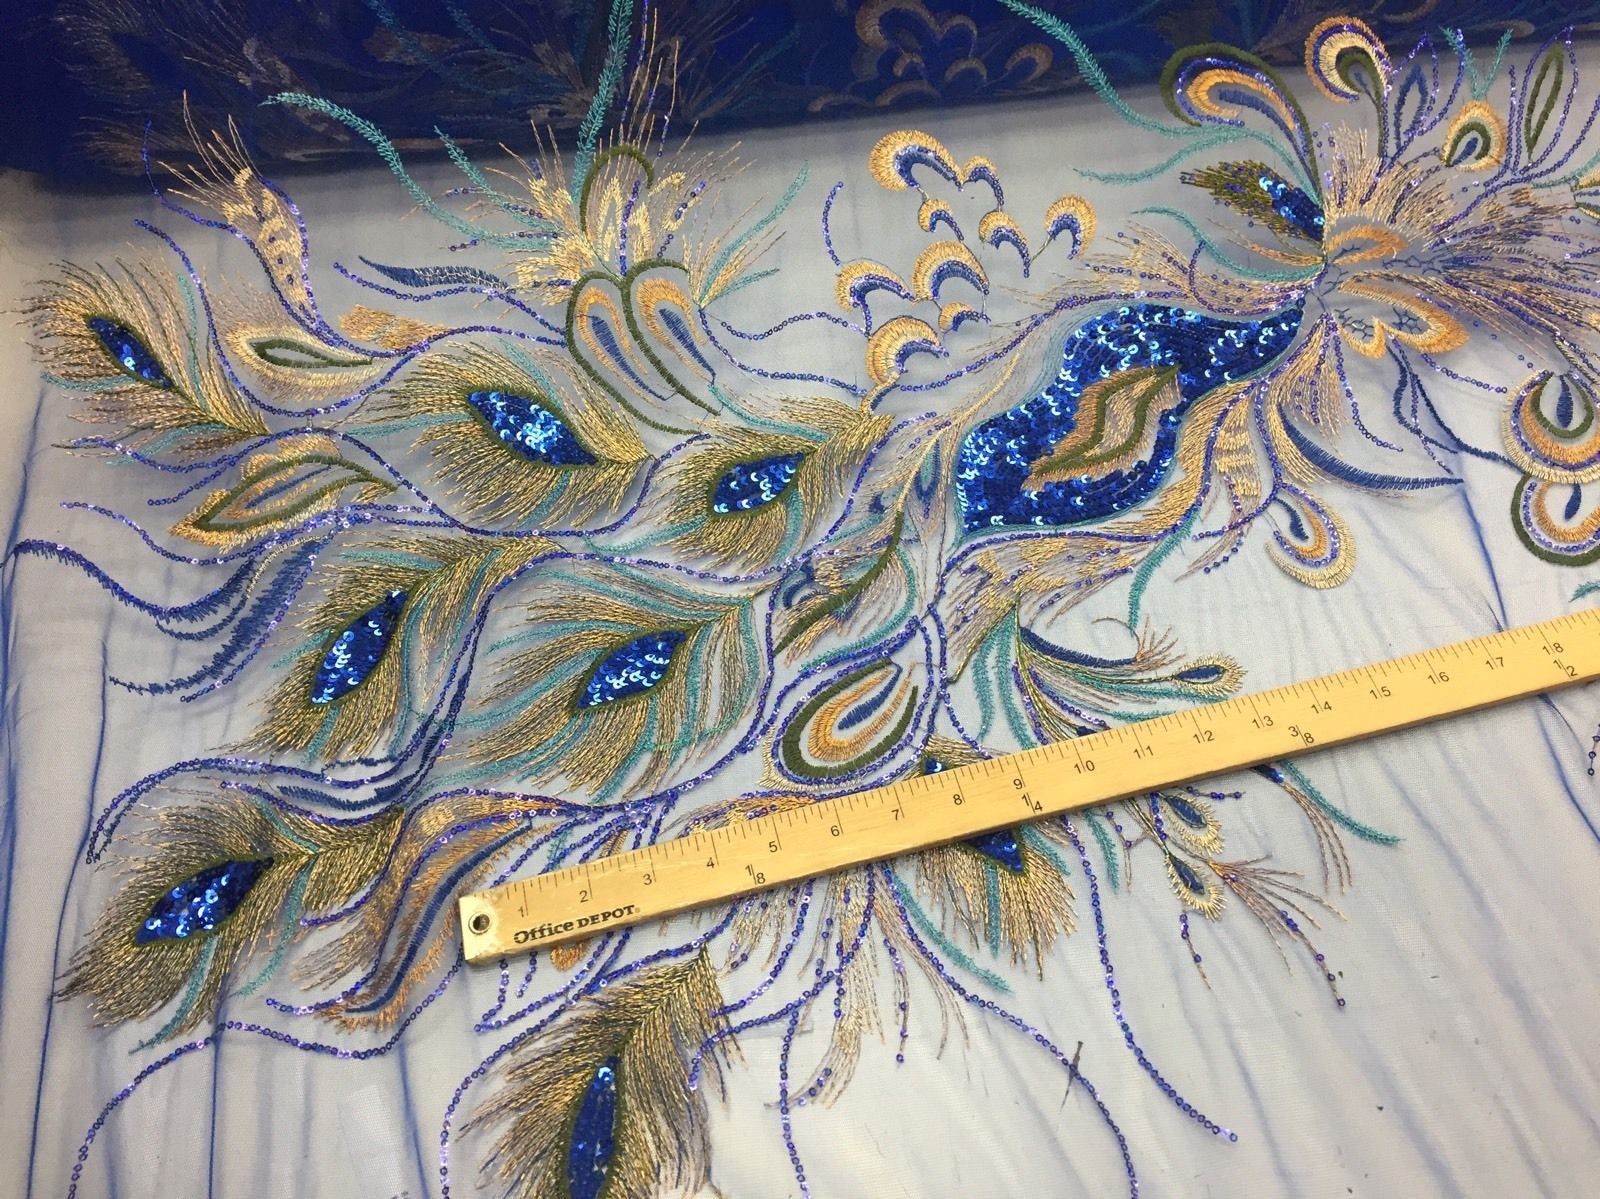 Peacock Feathers Embroider With Sequins And Metallic Tread On A Royal Blue Mesh. - KINGDOM OF FABRICS